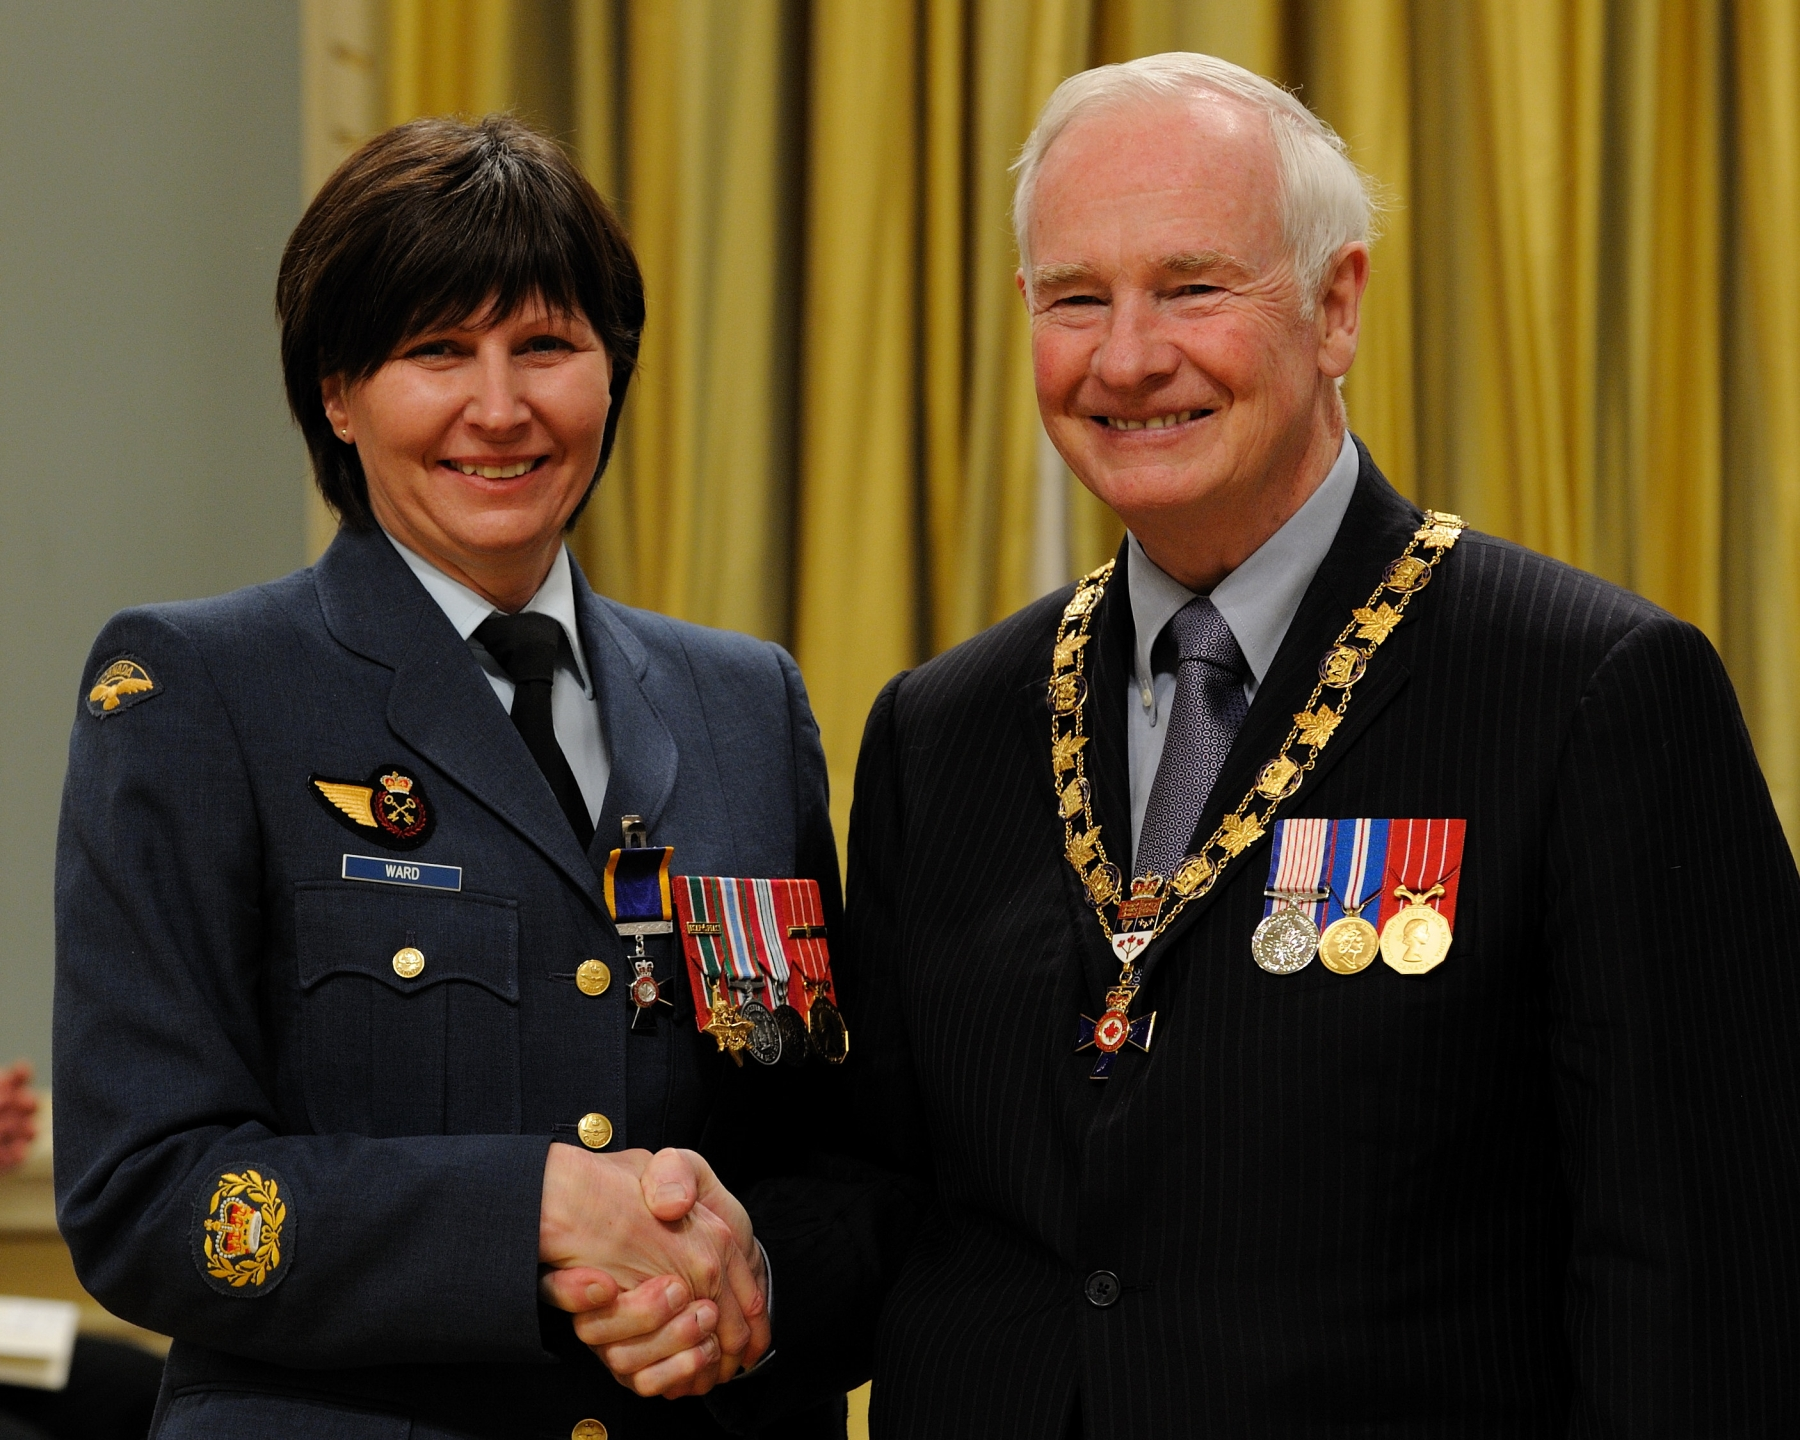 His Excellency presented the Order of Military Merit at the Member level (M.M.M.) to Master Warrant Officer Lise Ward, M.M.M., C.D., 3 Canadian Support Unit, Montréal, Quebec.